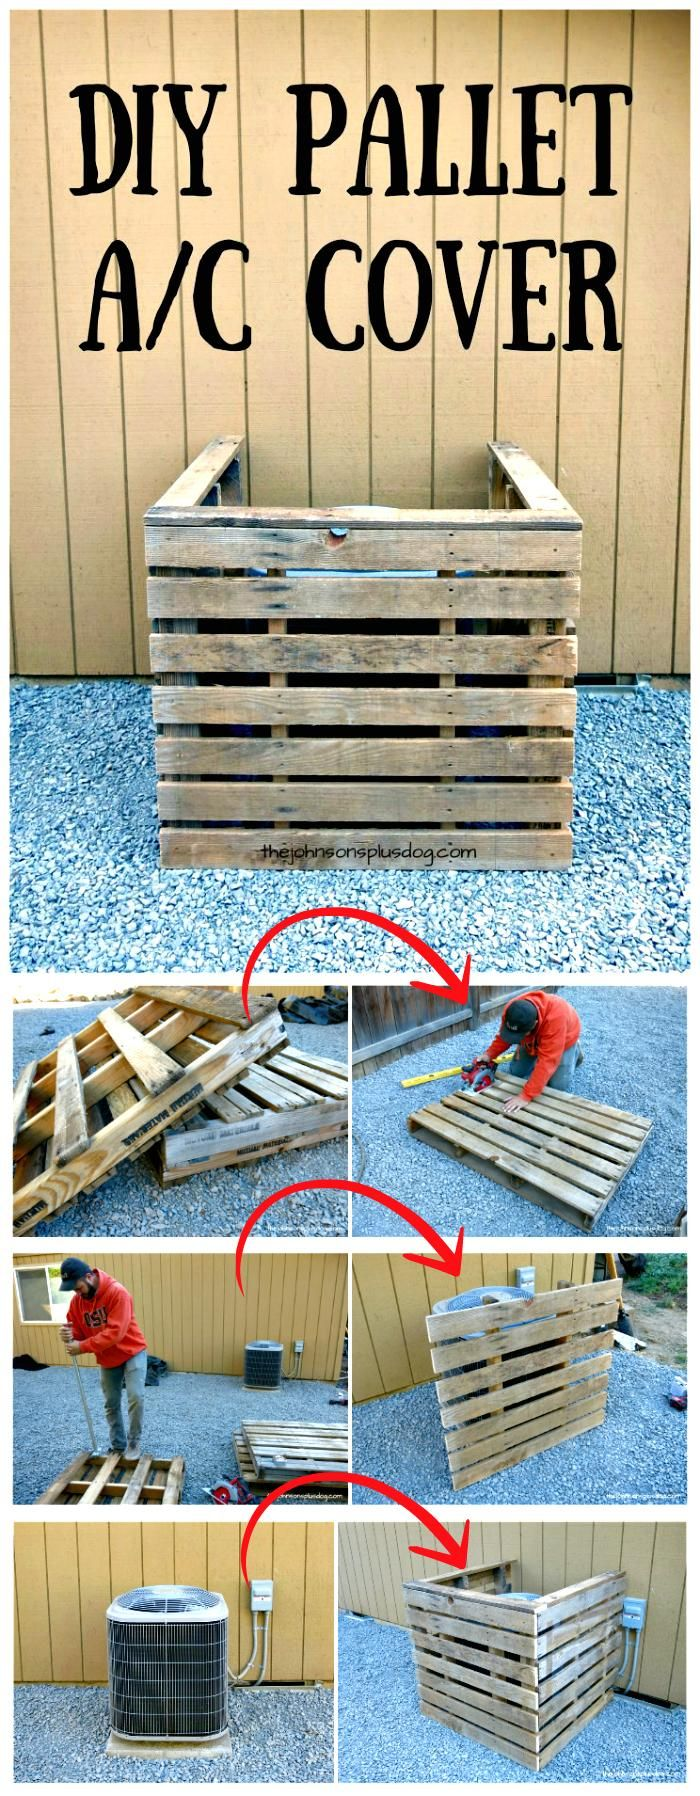 150 Best DIY Pallet Projects and Pallet Furniture Crafts - Page 75 of 75 - DIY & Crafts